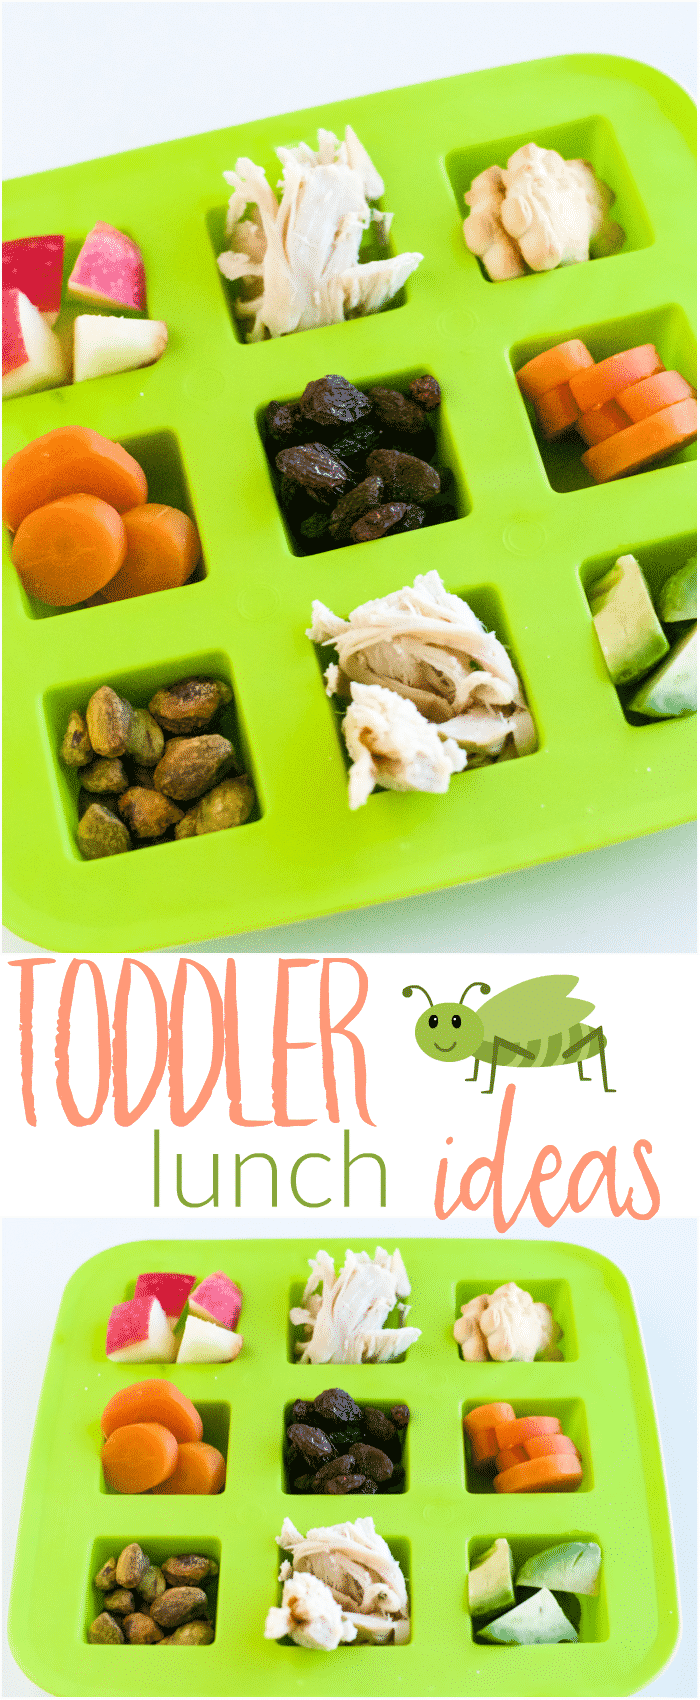 Toddler lunch ideas fantabulosity love these lunch ideas for toddlers toddler lunch ideas toddler dinner ideas toddler forumfinder Image collections